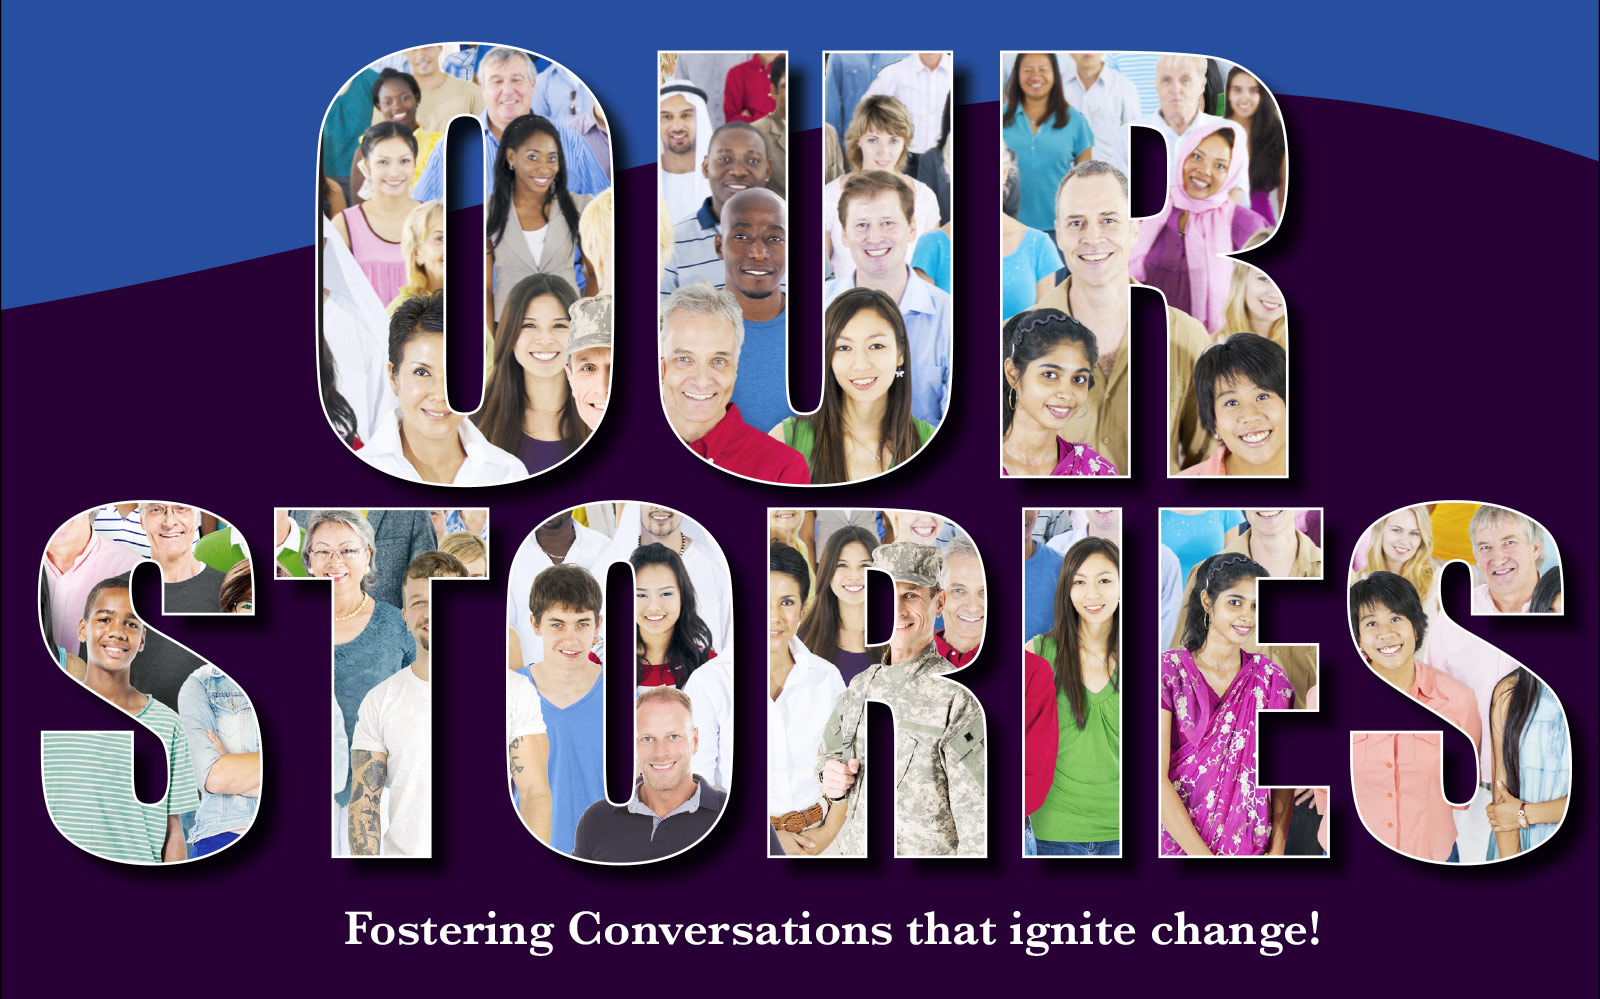 Our Stories - Fostering Conversations that Ignite Change